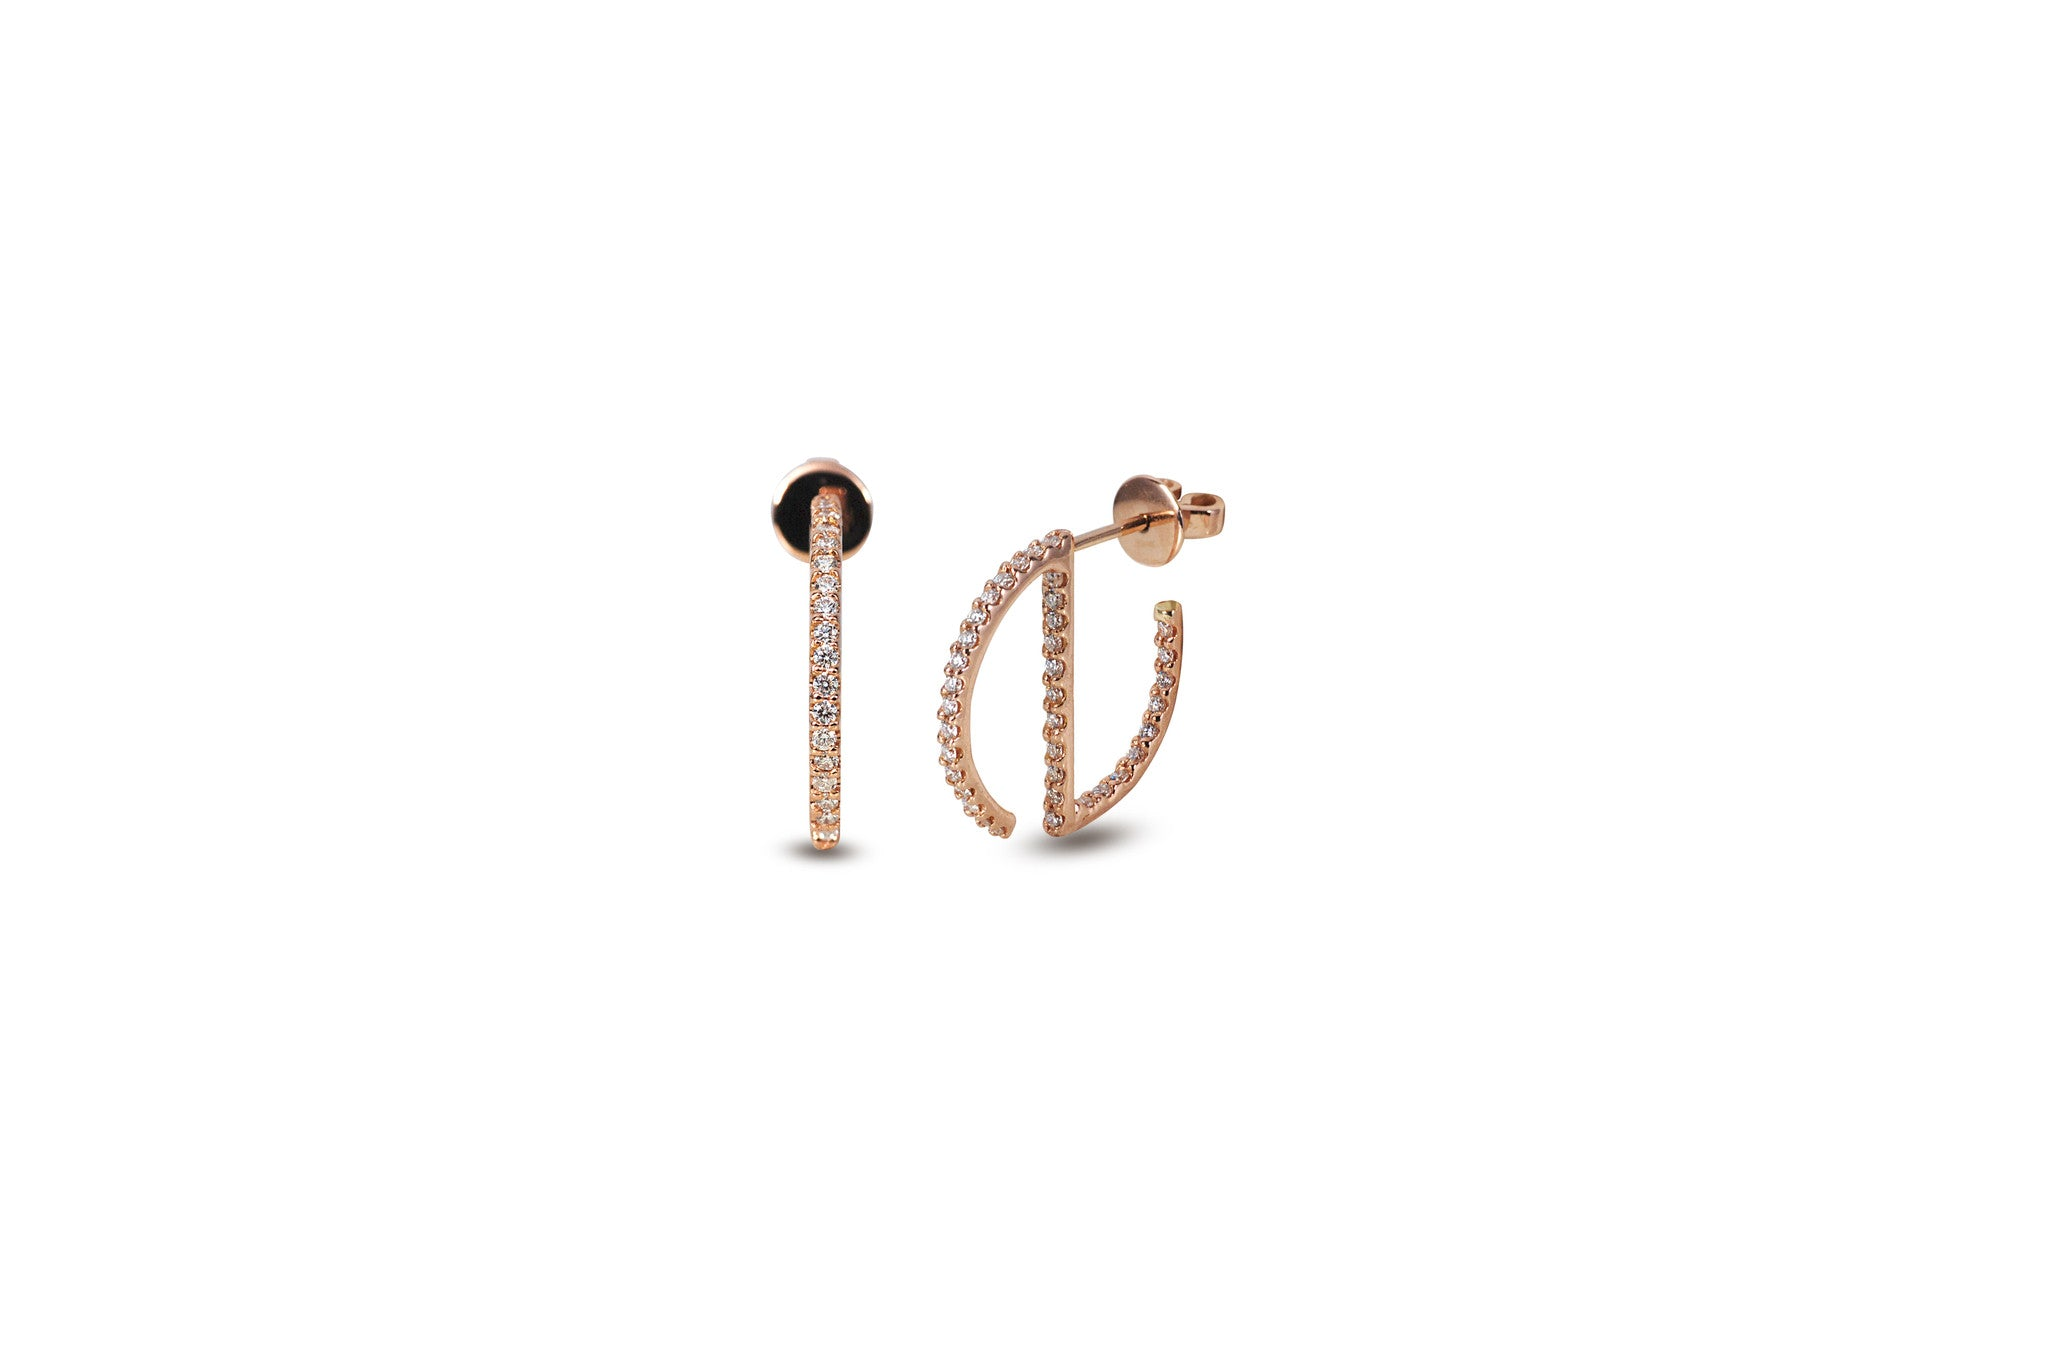 GeoArt Round Mini Hoop Diamond Earrings